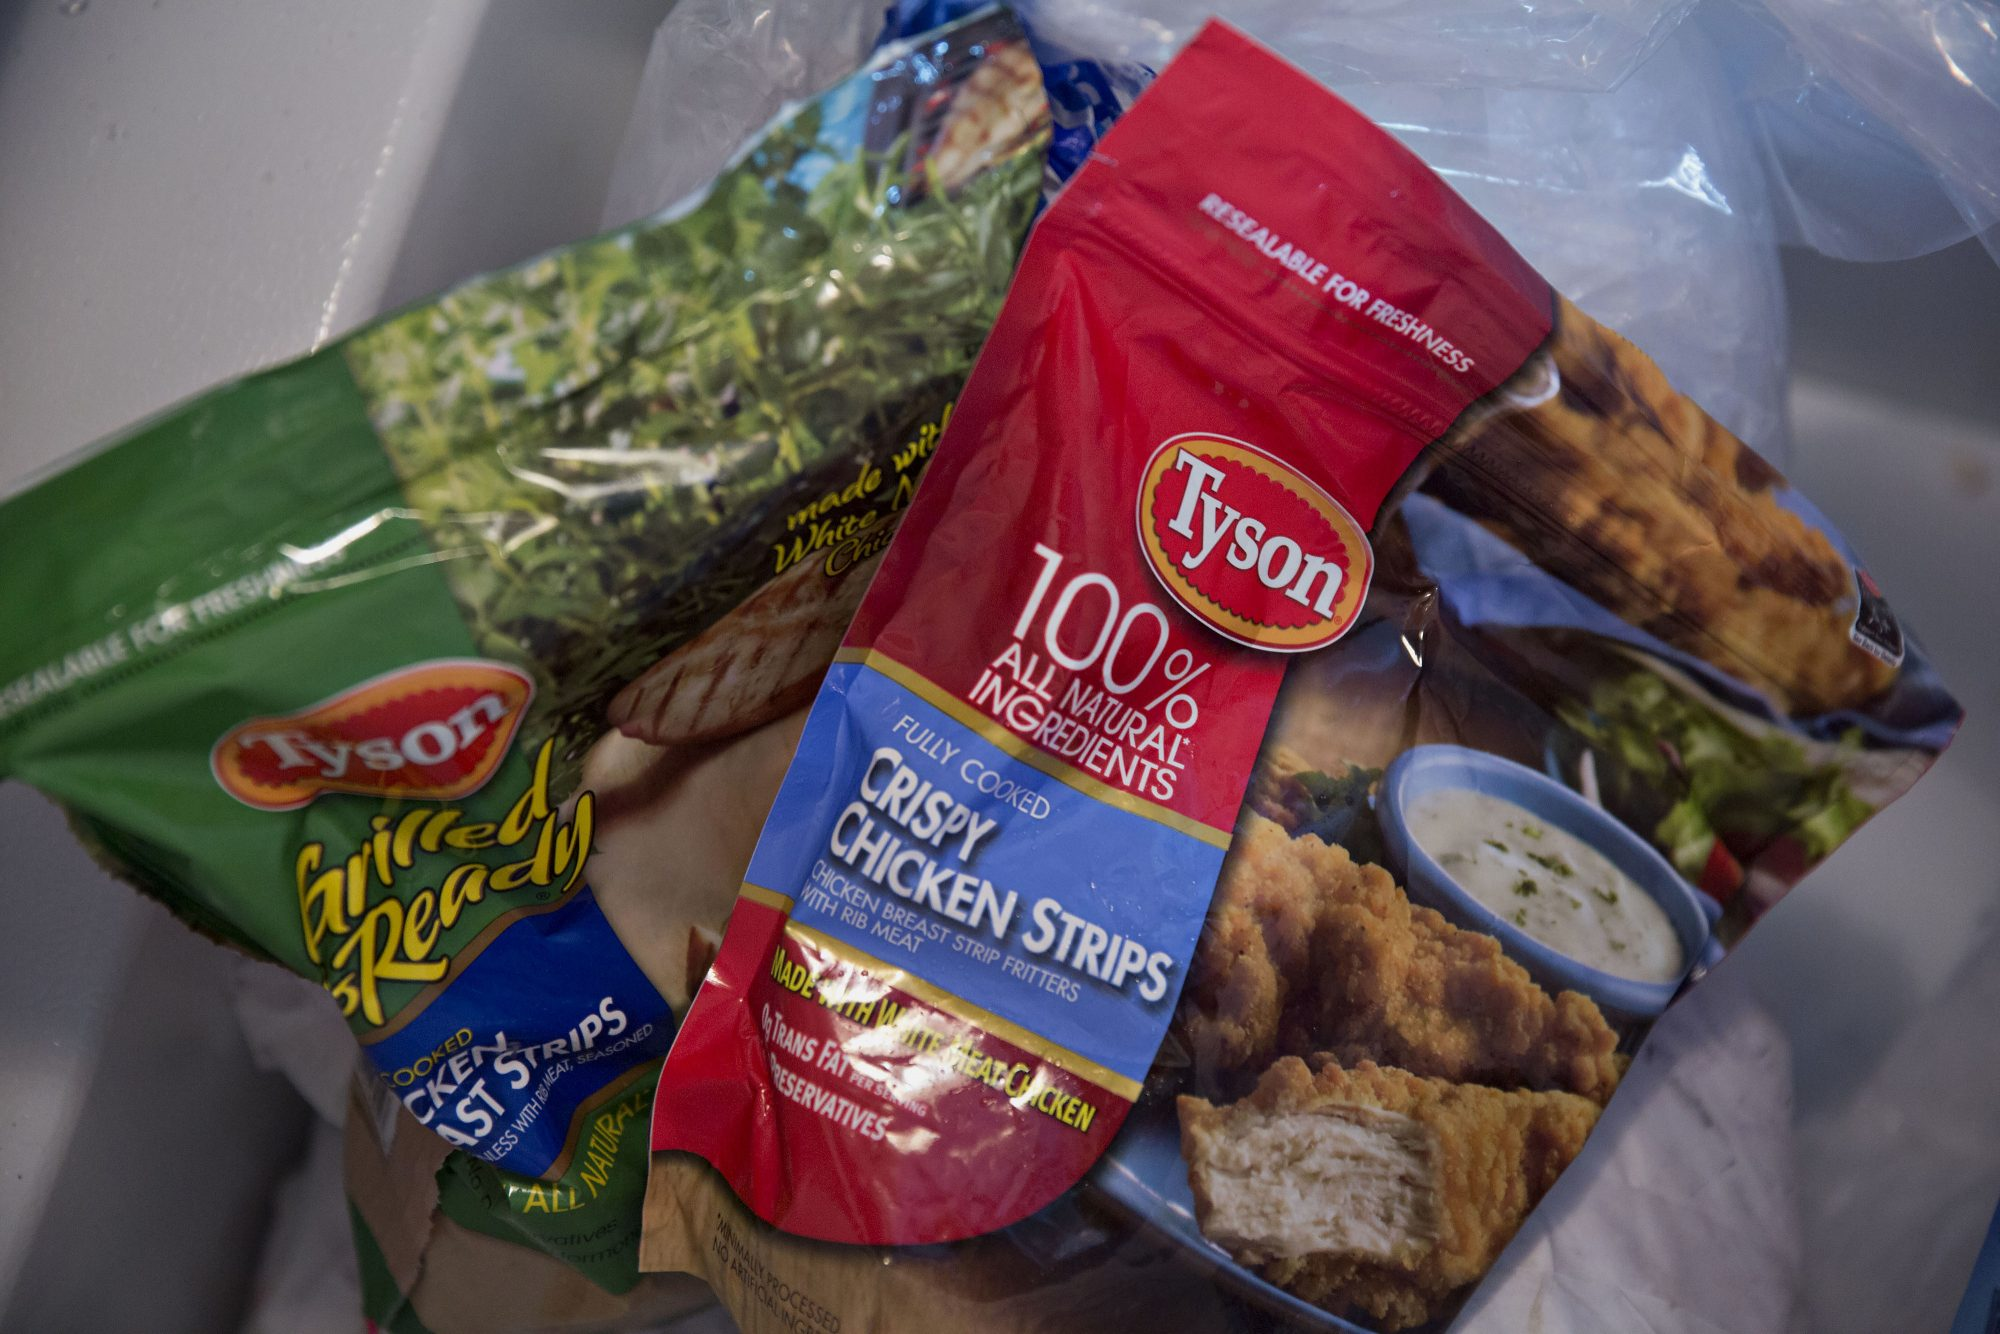 Tyson Foods Inc. brand frozen chicken products are arranged for a photograph in a freezer in Tiskilwa, Illinois, U.S., on Tuesday, July 28, 2015.